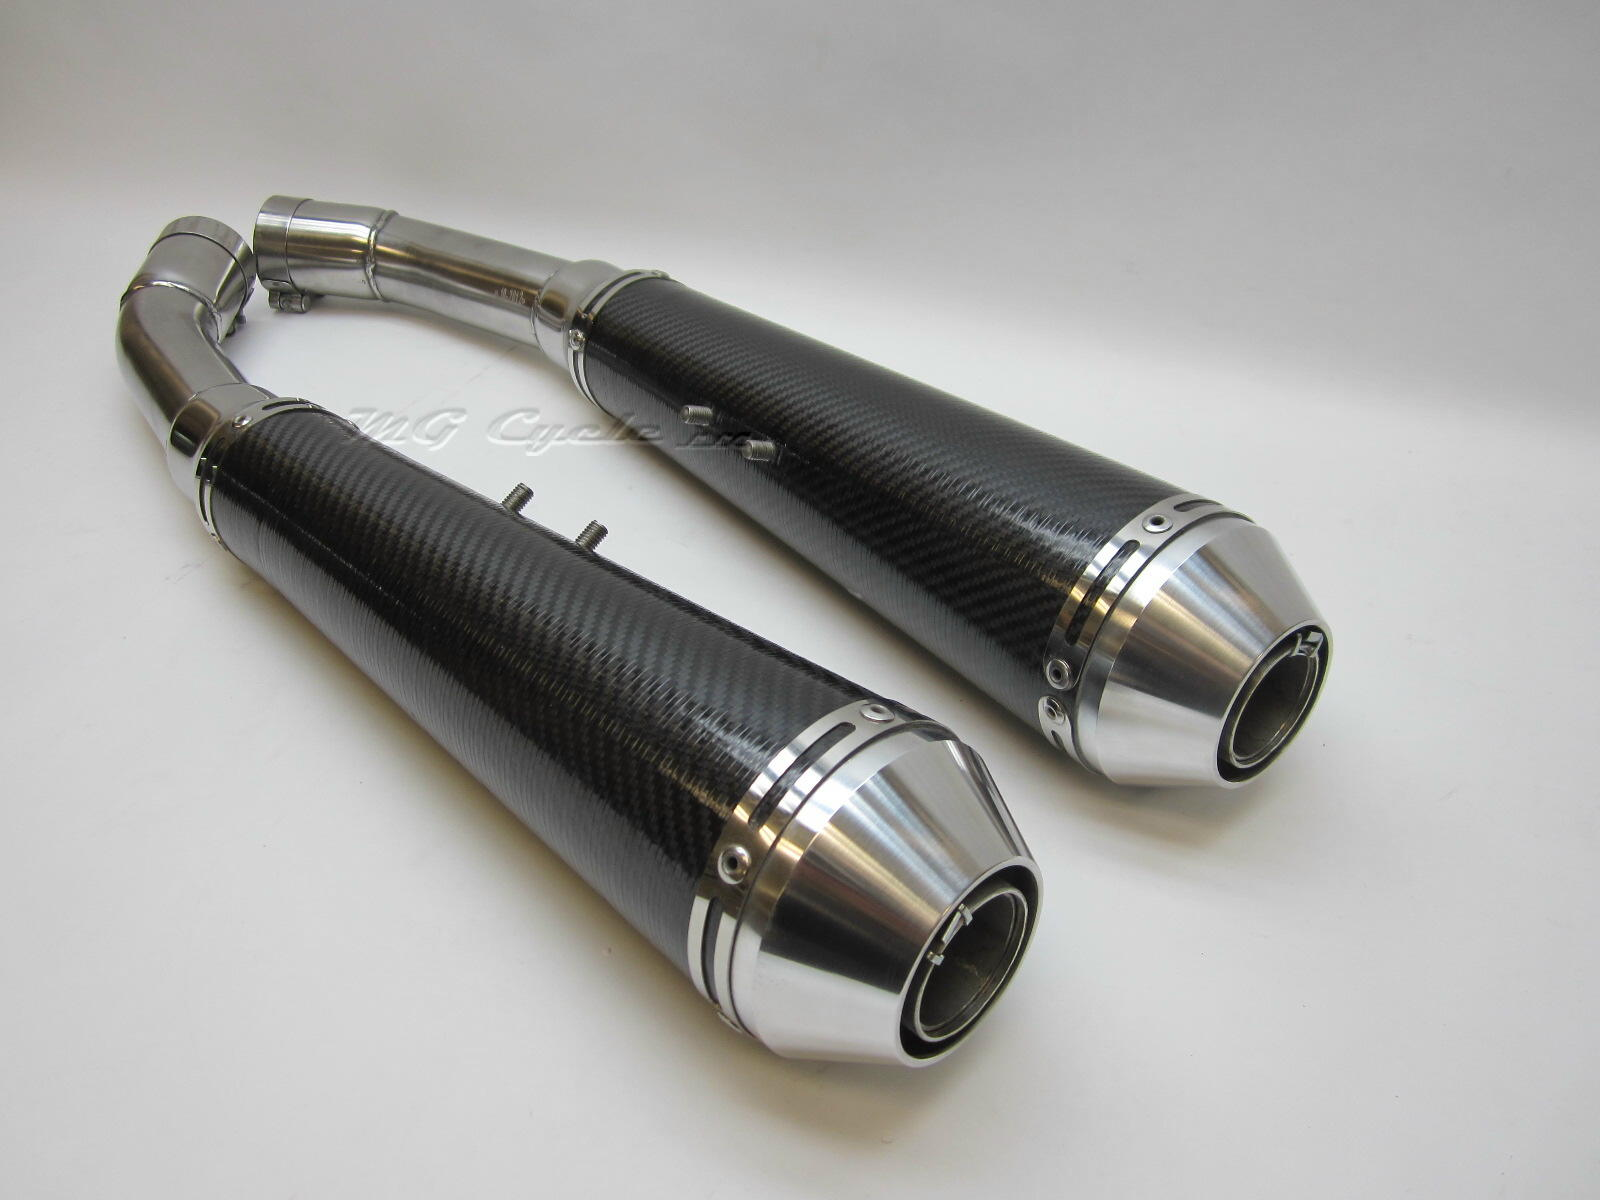 Mistral carbon fiber mufflers for V11 Sport and LeMans series